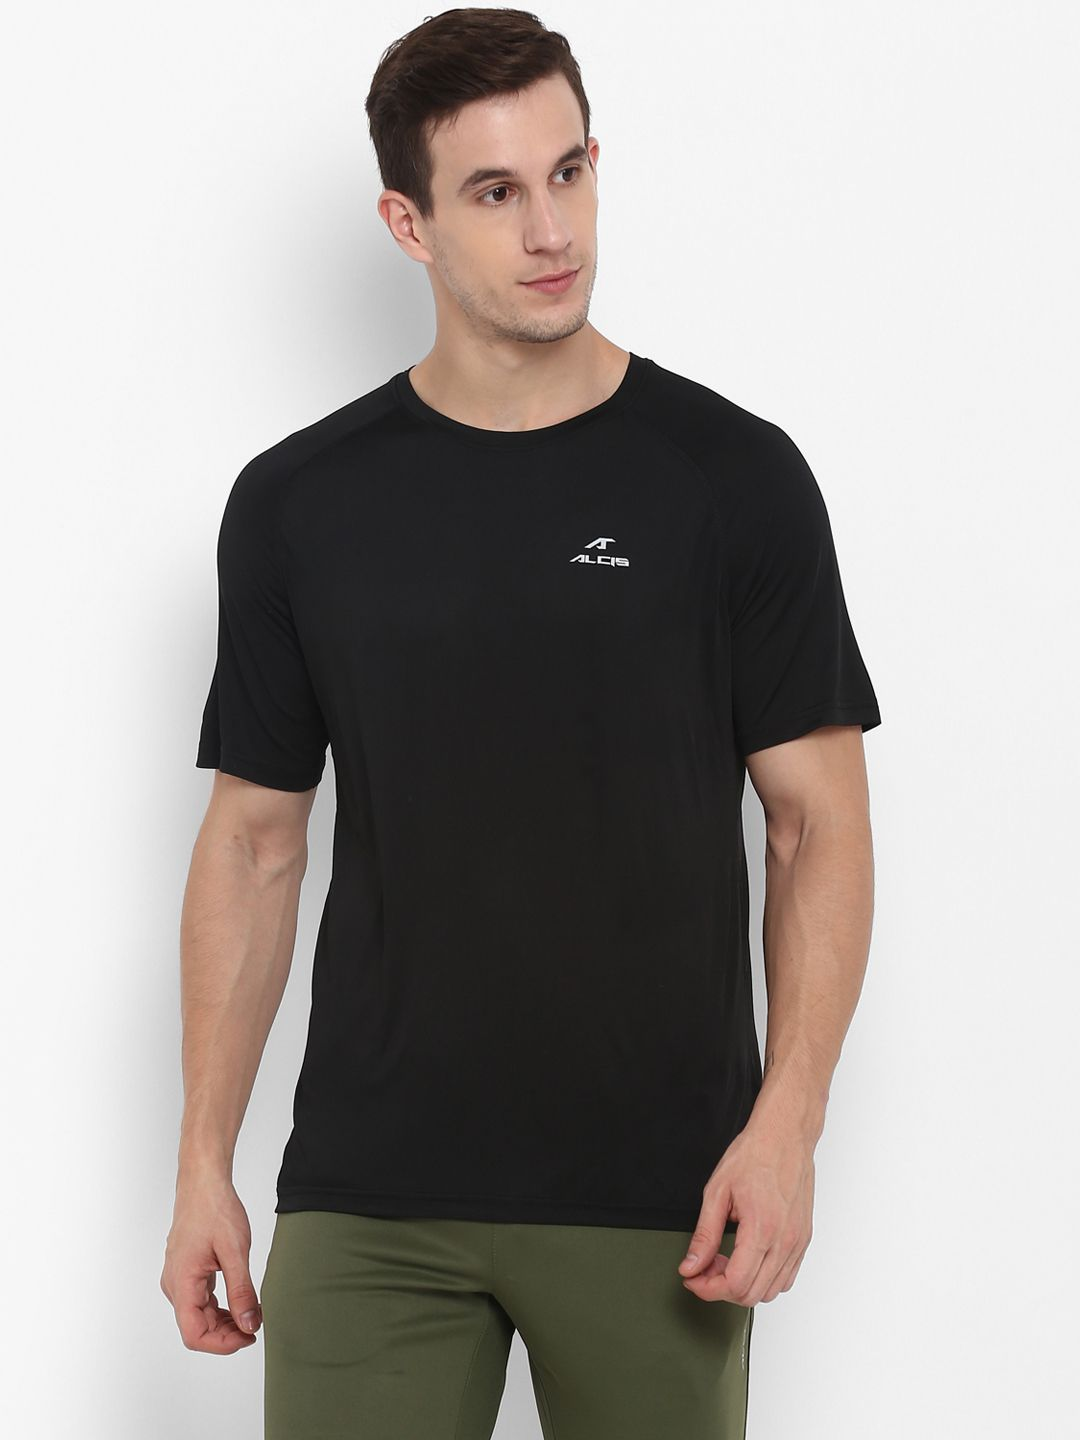 Alcis Black Half Sleeve T-Shirt Pack of 1